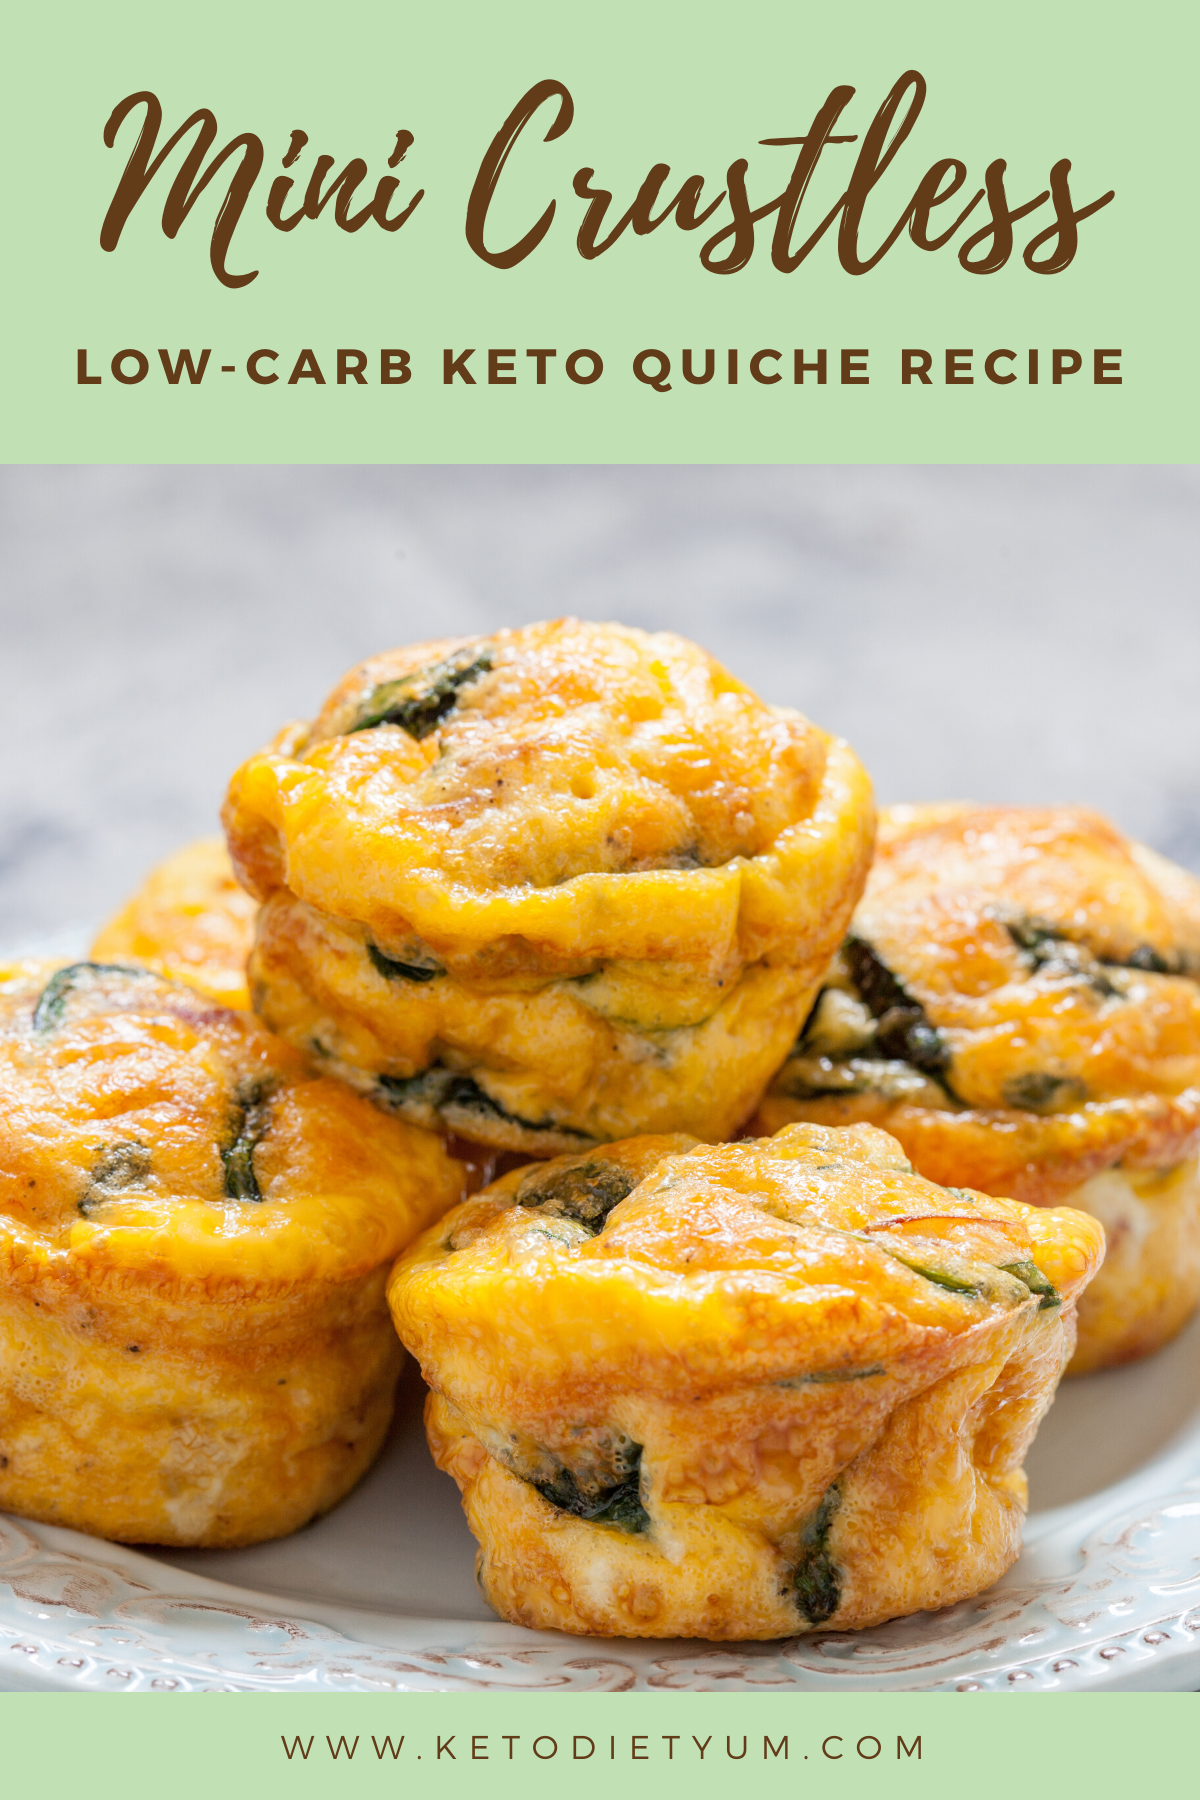 These low-carb mini crustless quiches are a great go-to keto recipe for breakfast, brunch, snacks or even a light dinner. Make them ahead of time for an easy breakfast! #ketodiet #ketorecipes #lowcarbrecipes